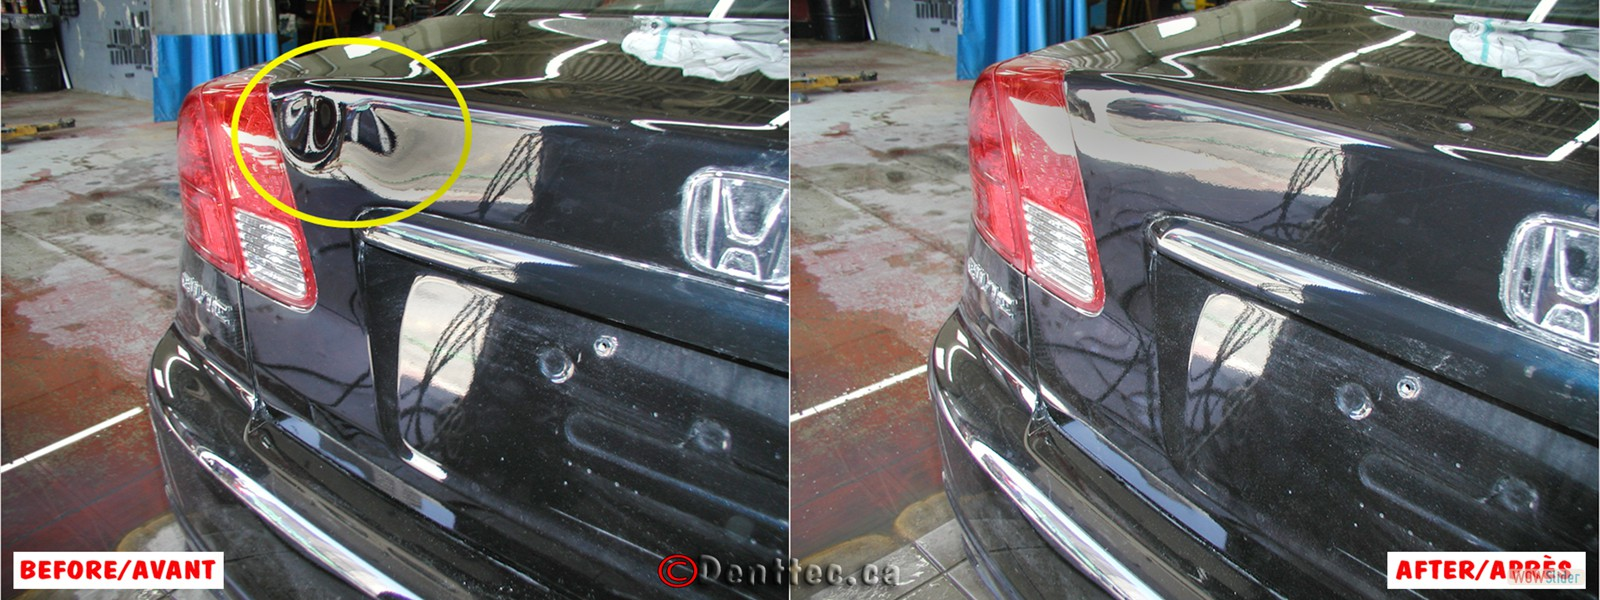 DentTec_30 Dent Trunk Black Civic